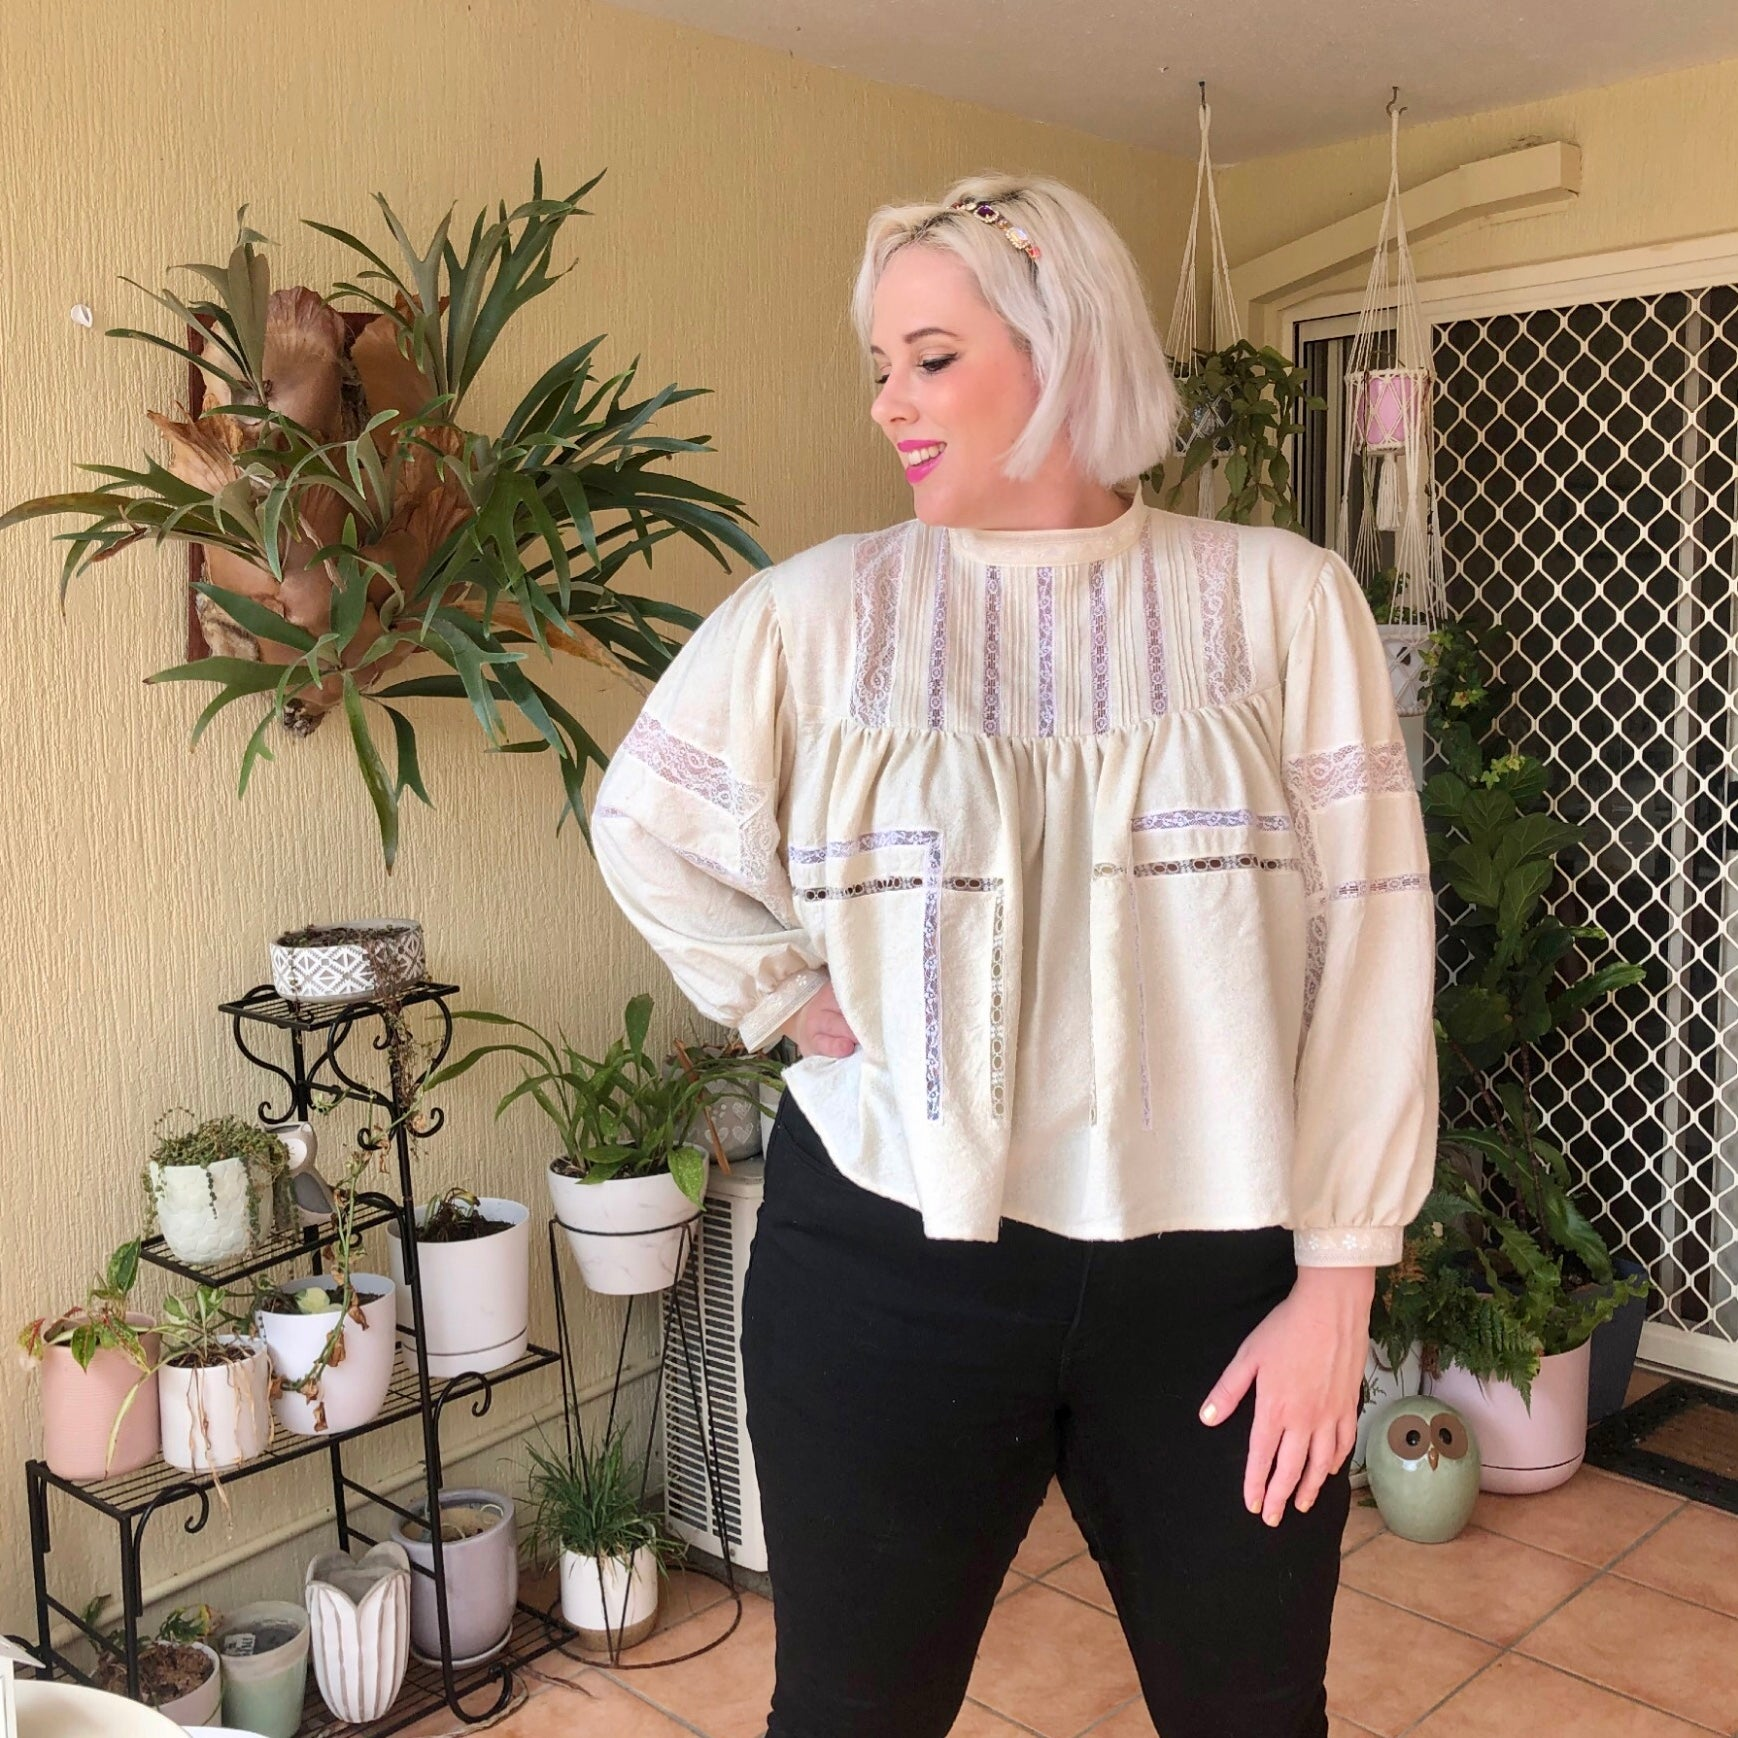 Shannon stands with one hand on her hip in front of her potted plants wearing her off white Silk Noil and lace long sleeved blouse with black jeans.  She is looking off to the side.